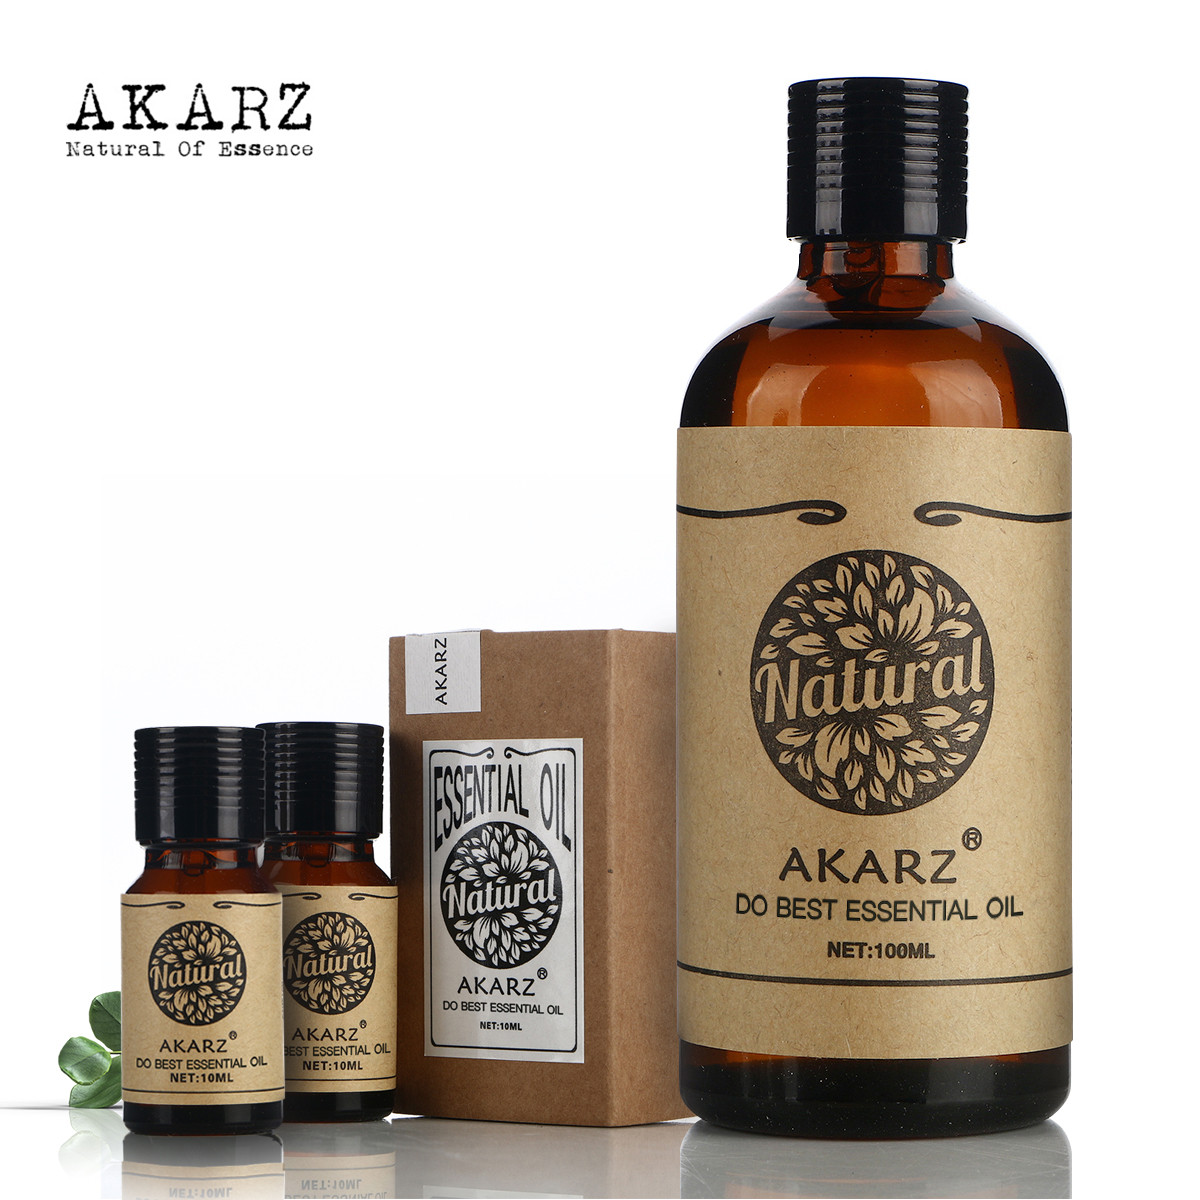 AKARZ Famous brand Whitening sets Rose essential oil (10ml) Rose Hip oil(100ml)peppermint oil(10ml) Repair wrinkles scars Oil alobon 10ml 120